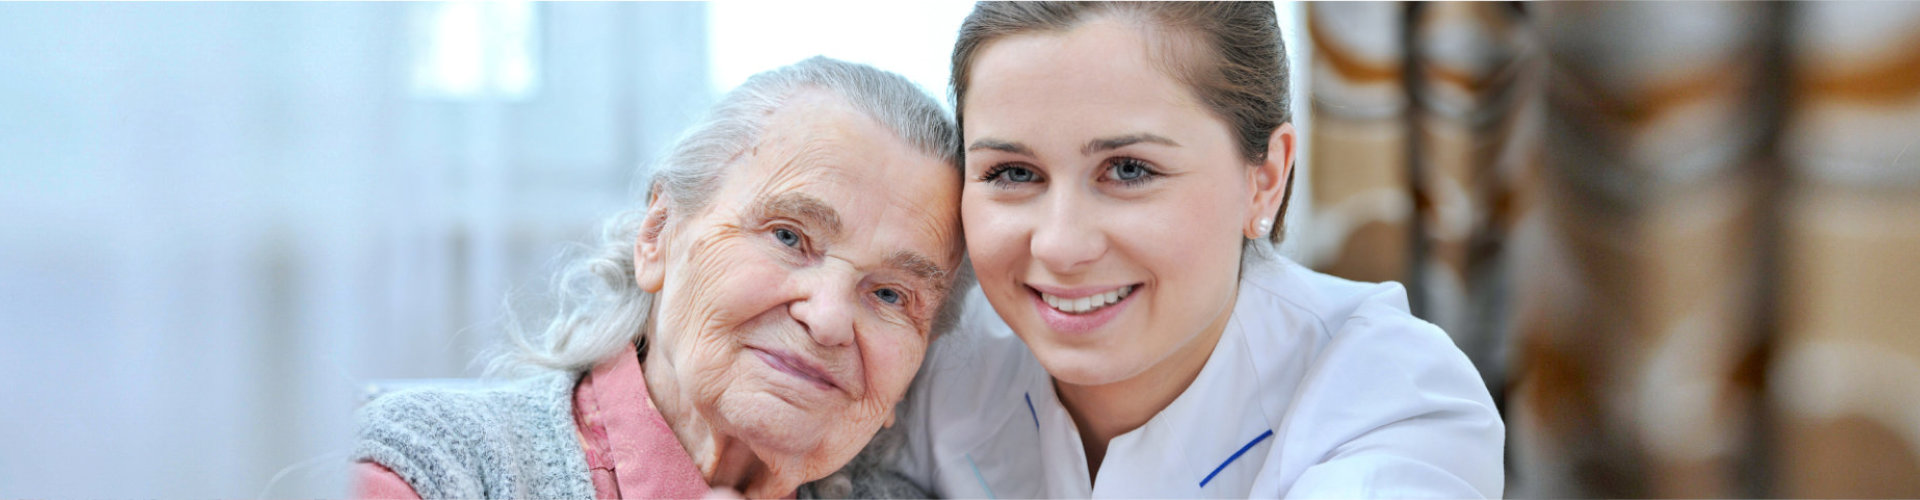 caregiver and elder woman